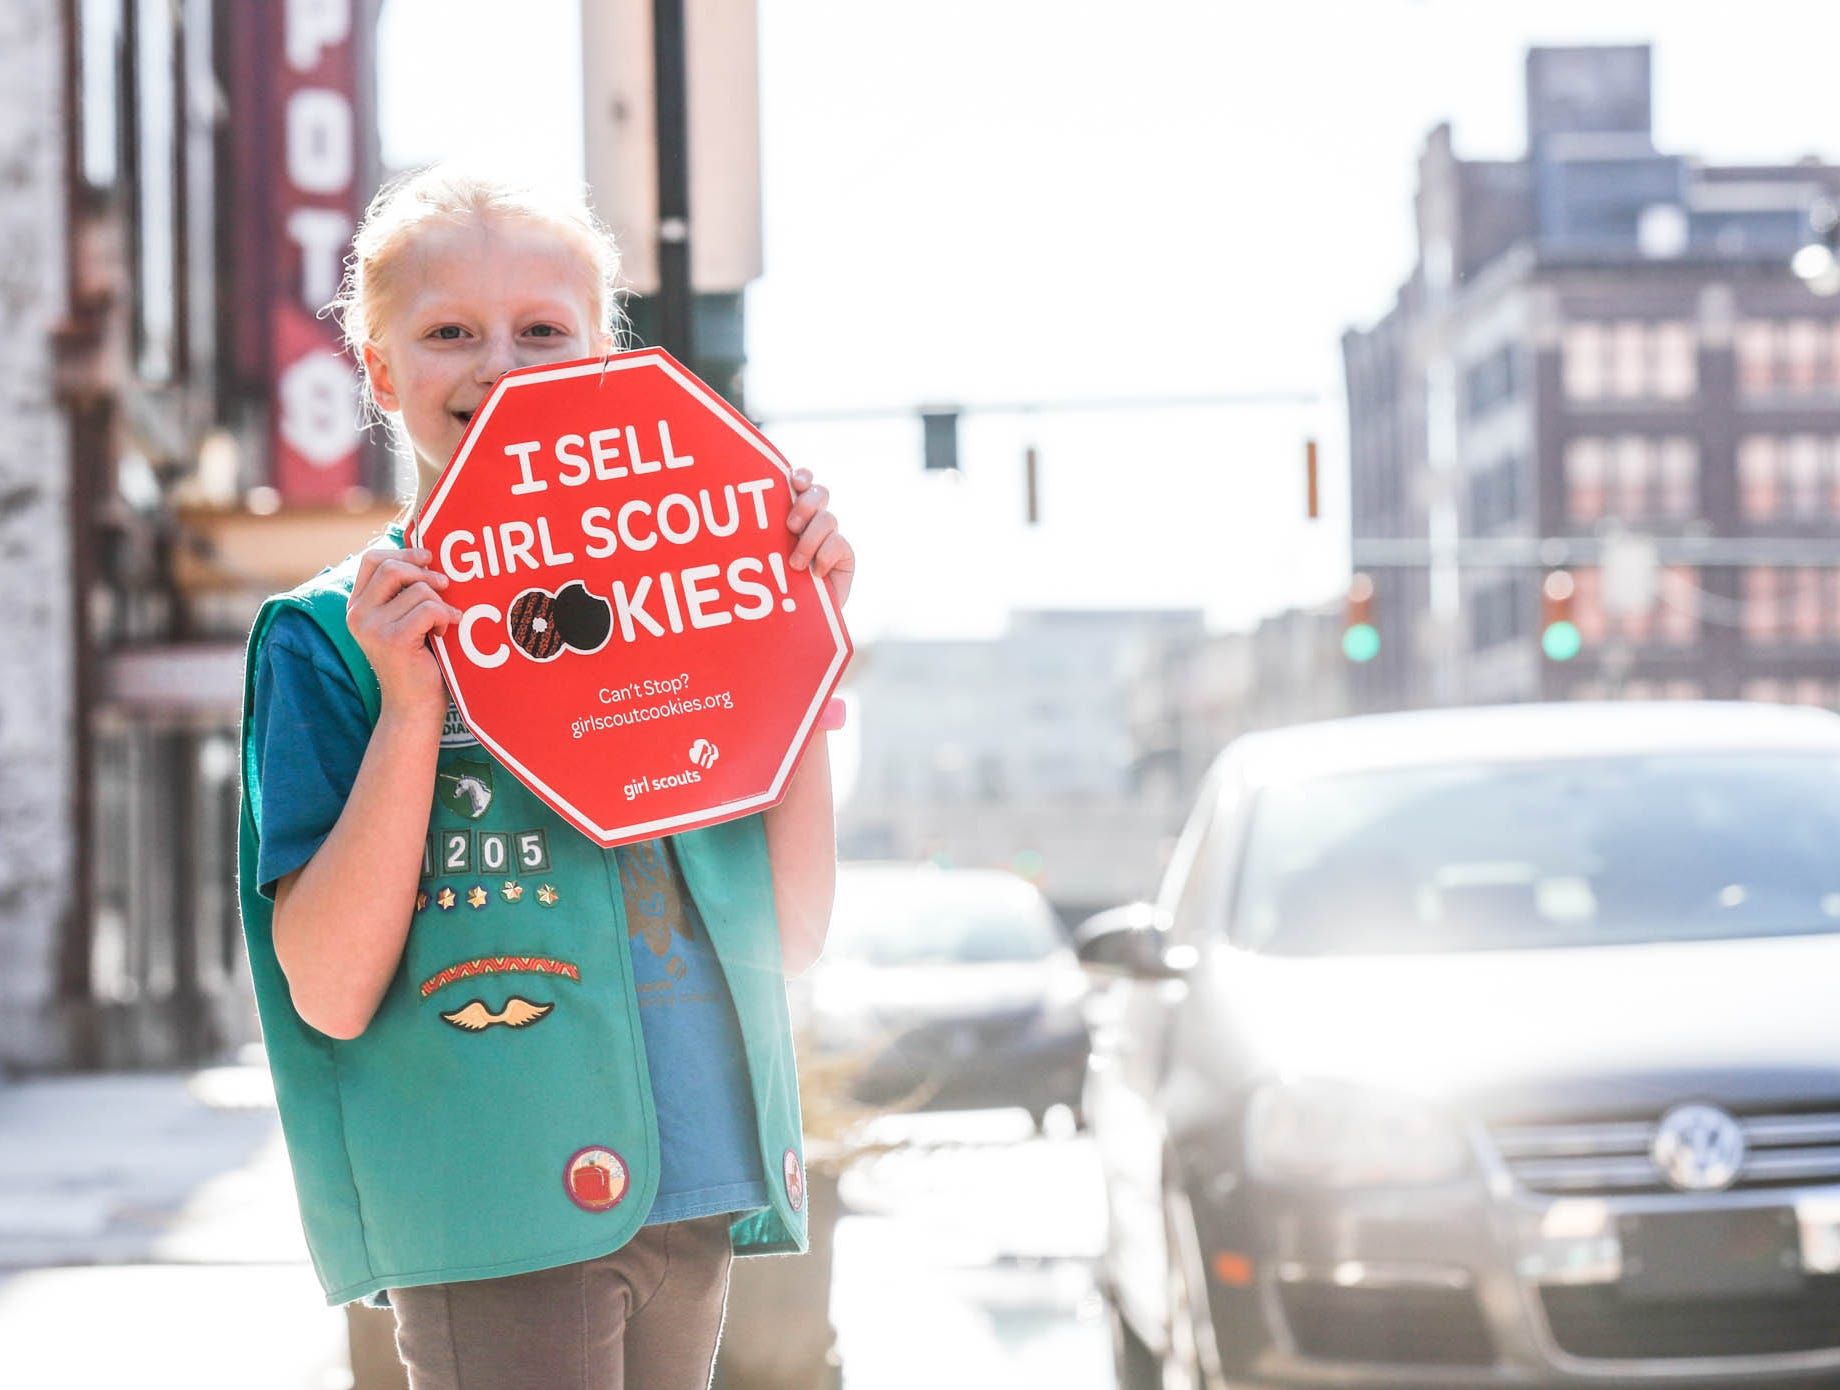 Hailey Gill, from troop 1205 dances with her Girl Scout cookie sales sign along S. Meridian St., on a near sixty-degree afternoon in Indianapolis on Sunday, Feb. 3, 2019.